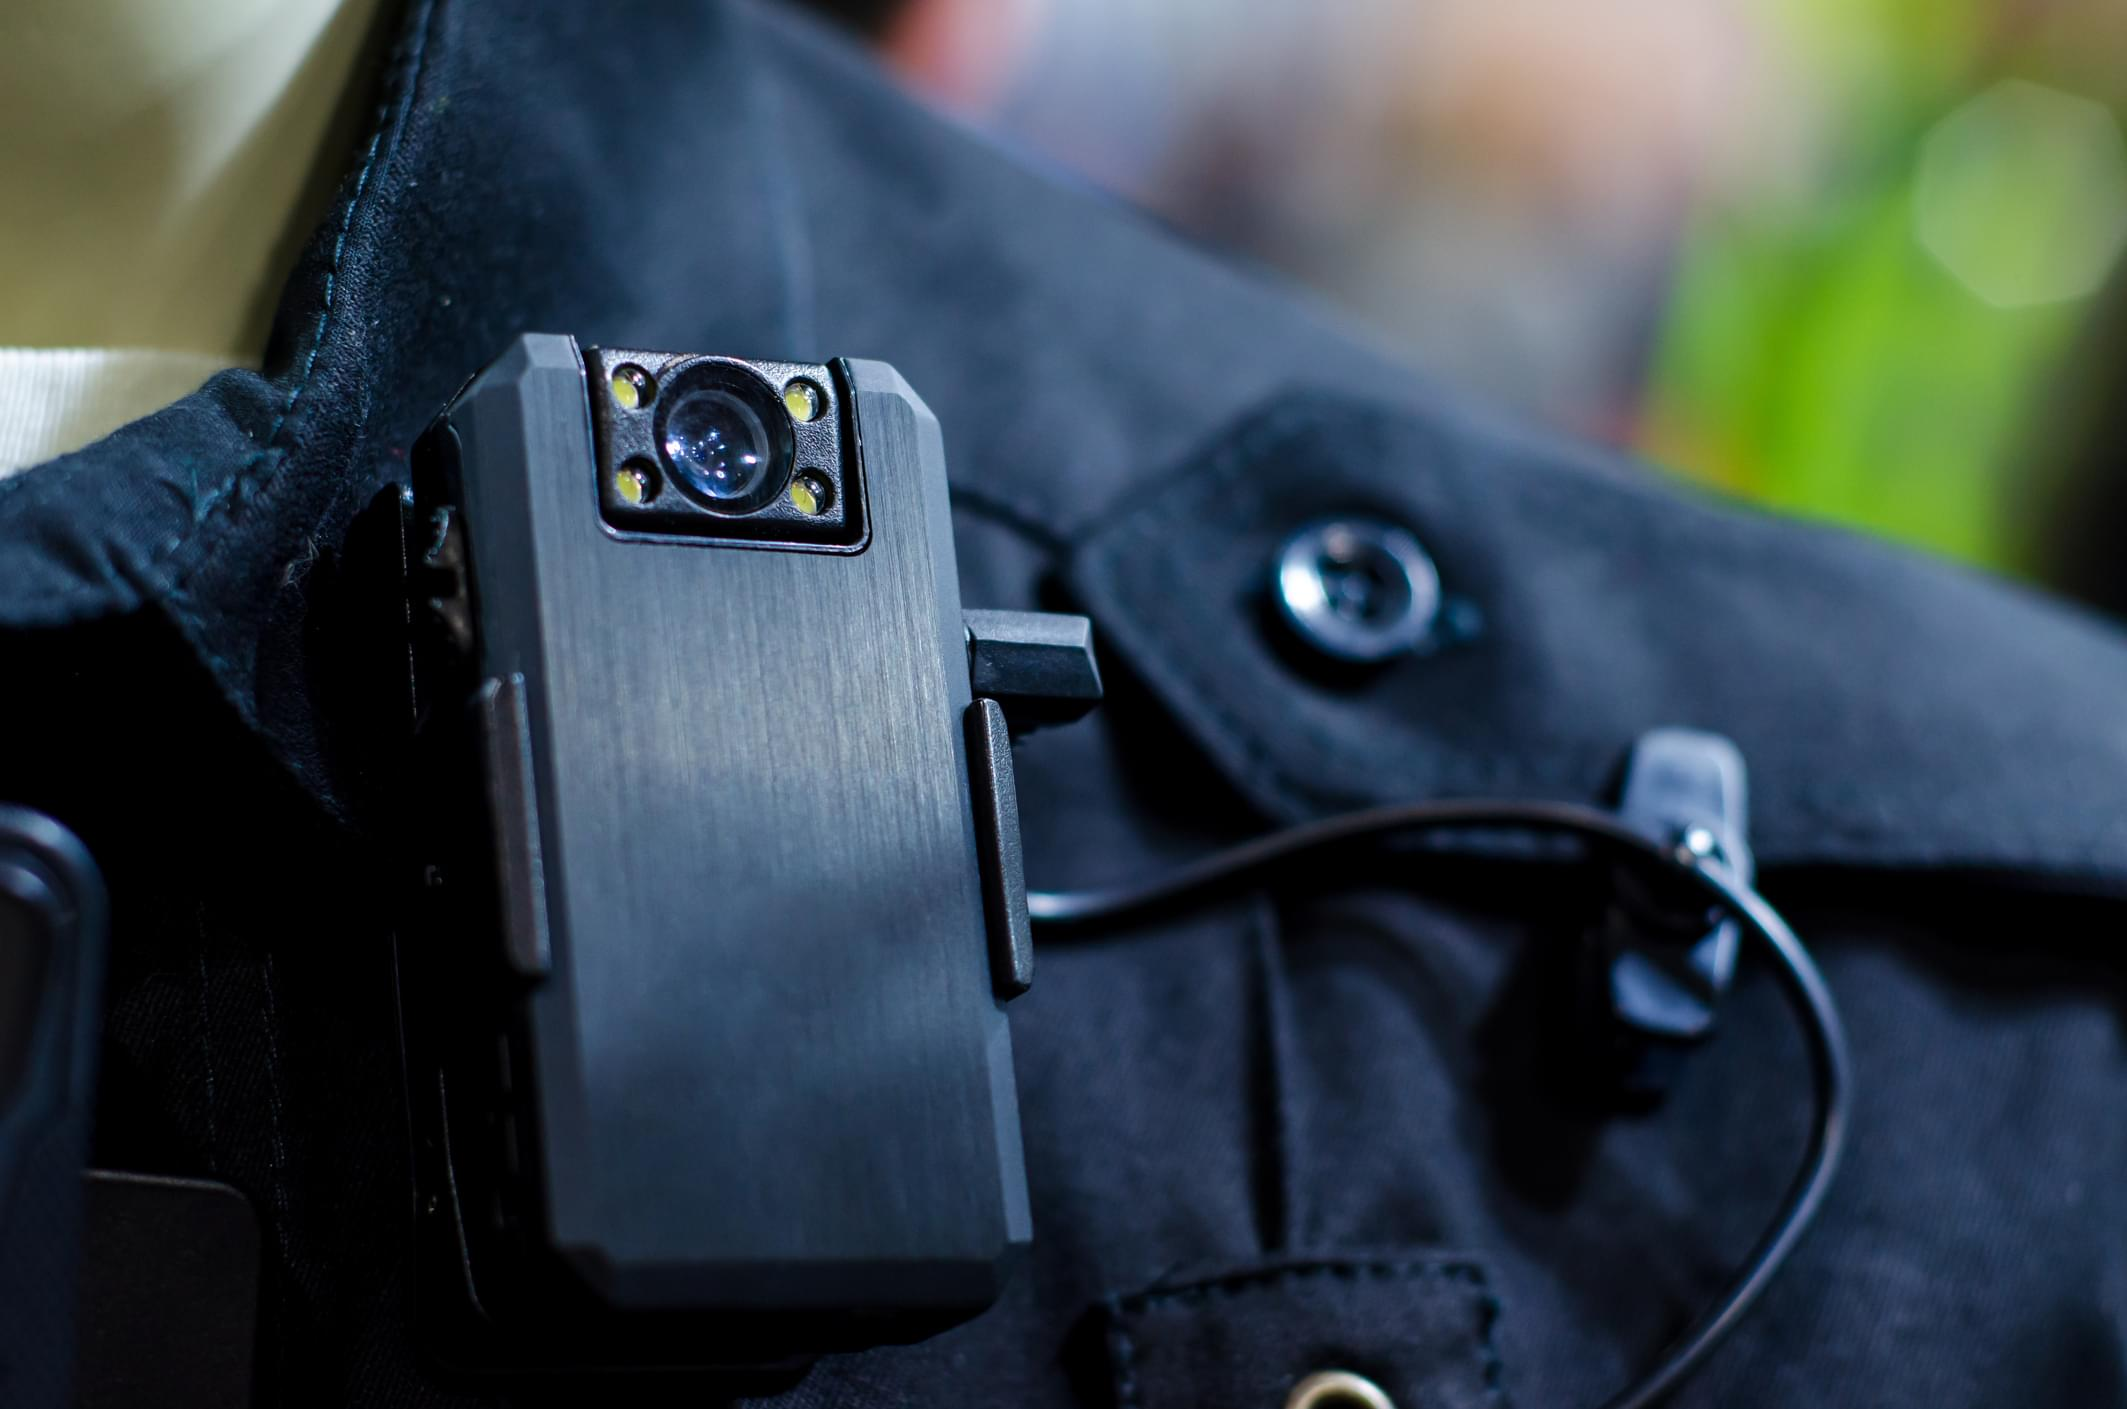 Melissa in the Morning: A Need of Body Cams